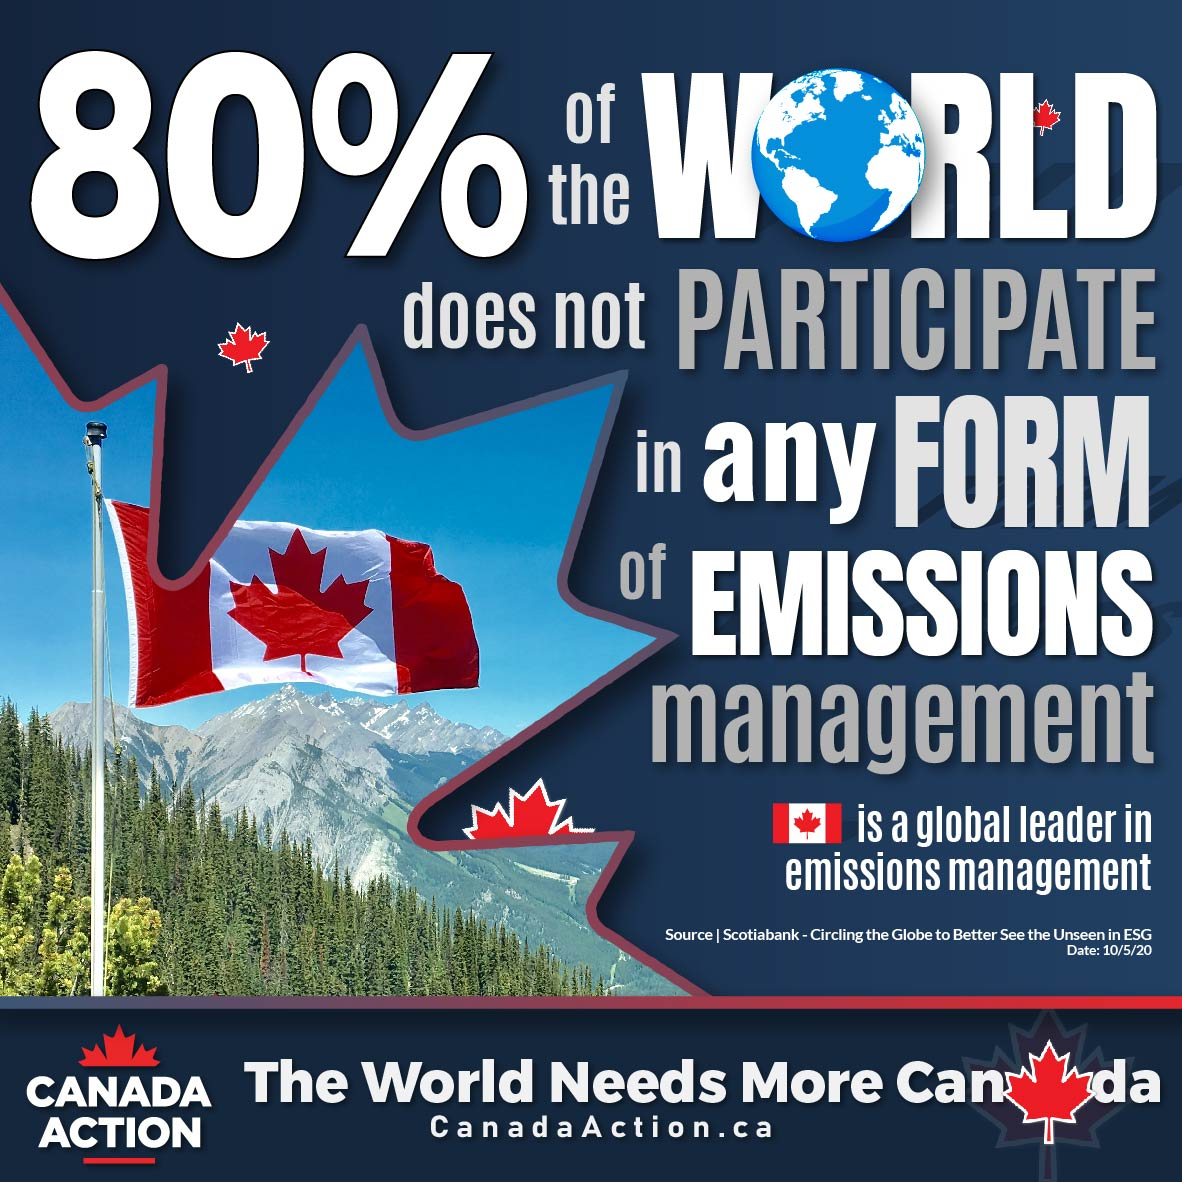 Canada is a leader in GHG emissions management